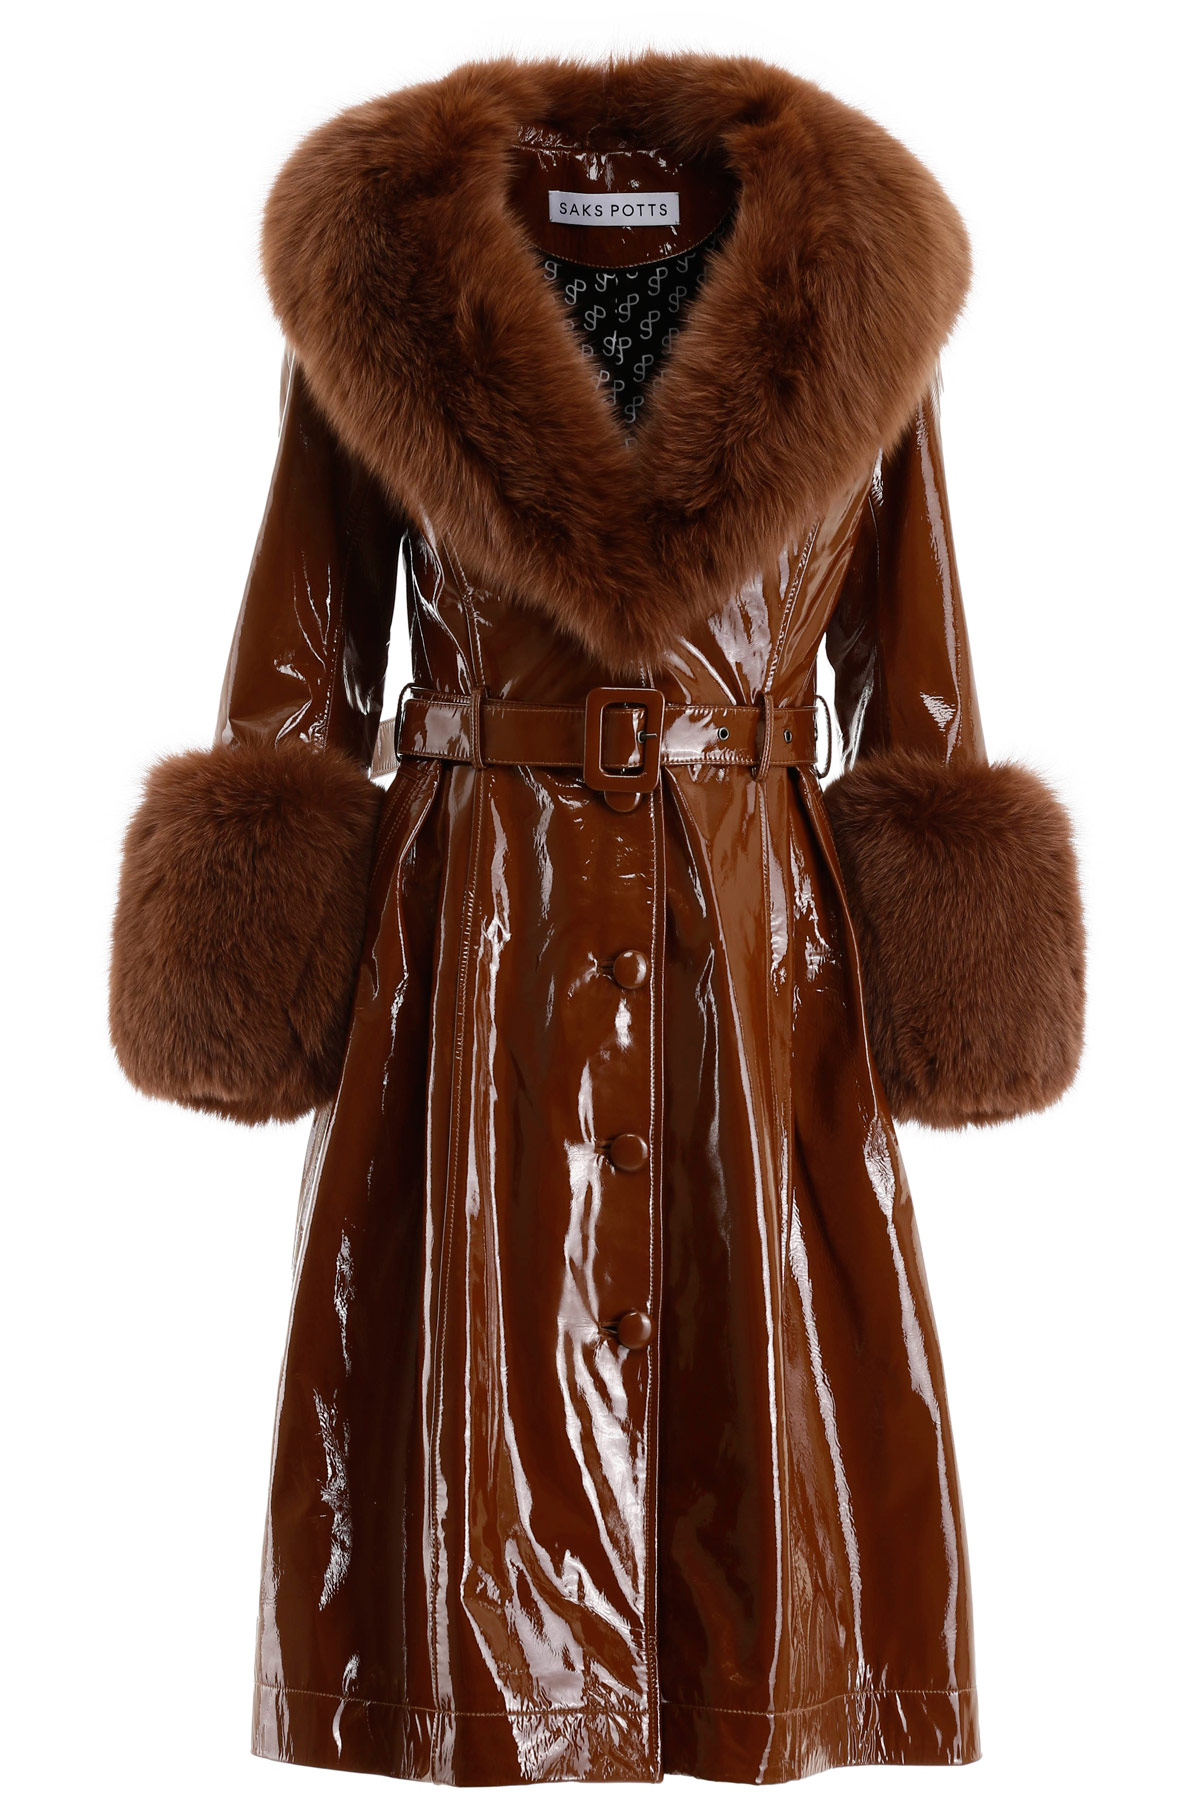 Saks Potts FOXY GLOSSY LEATHER COAT